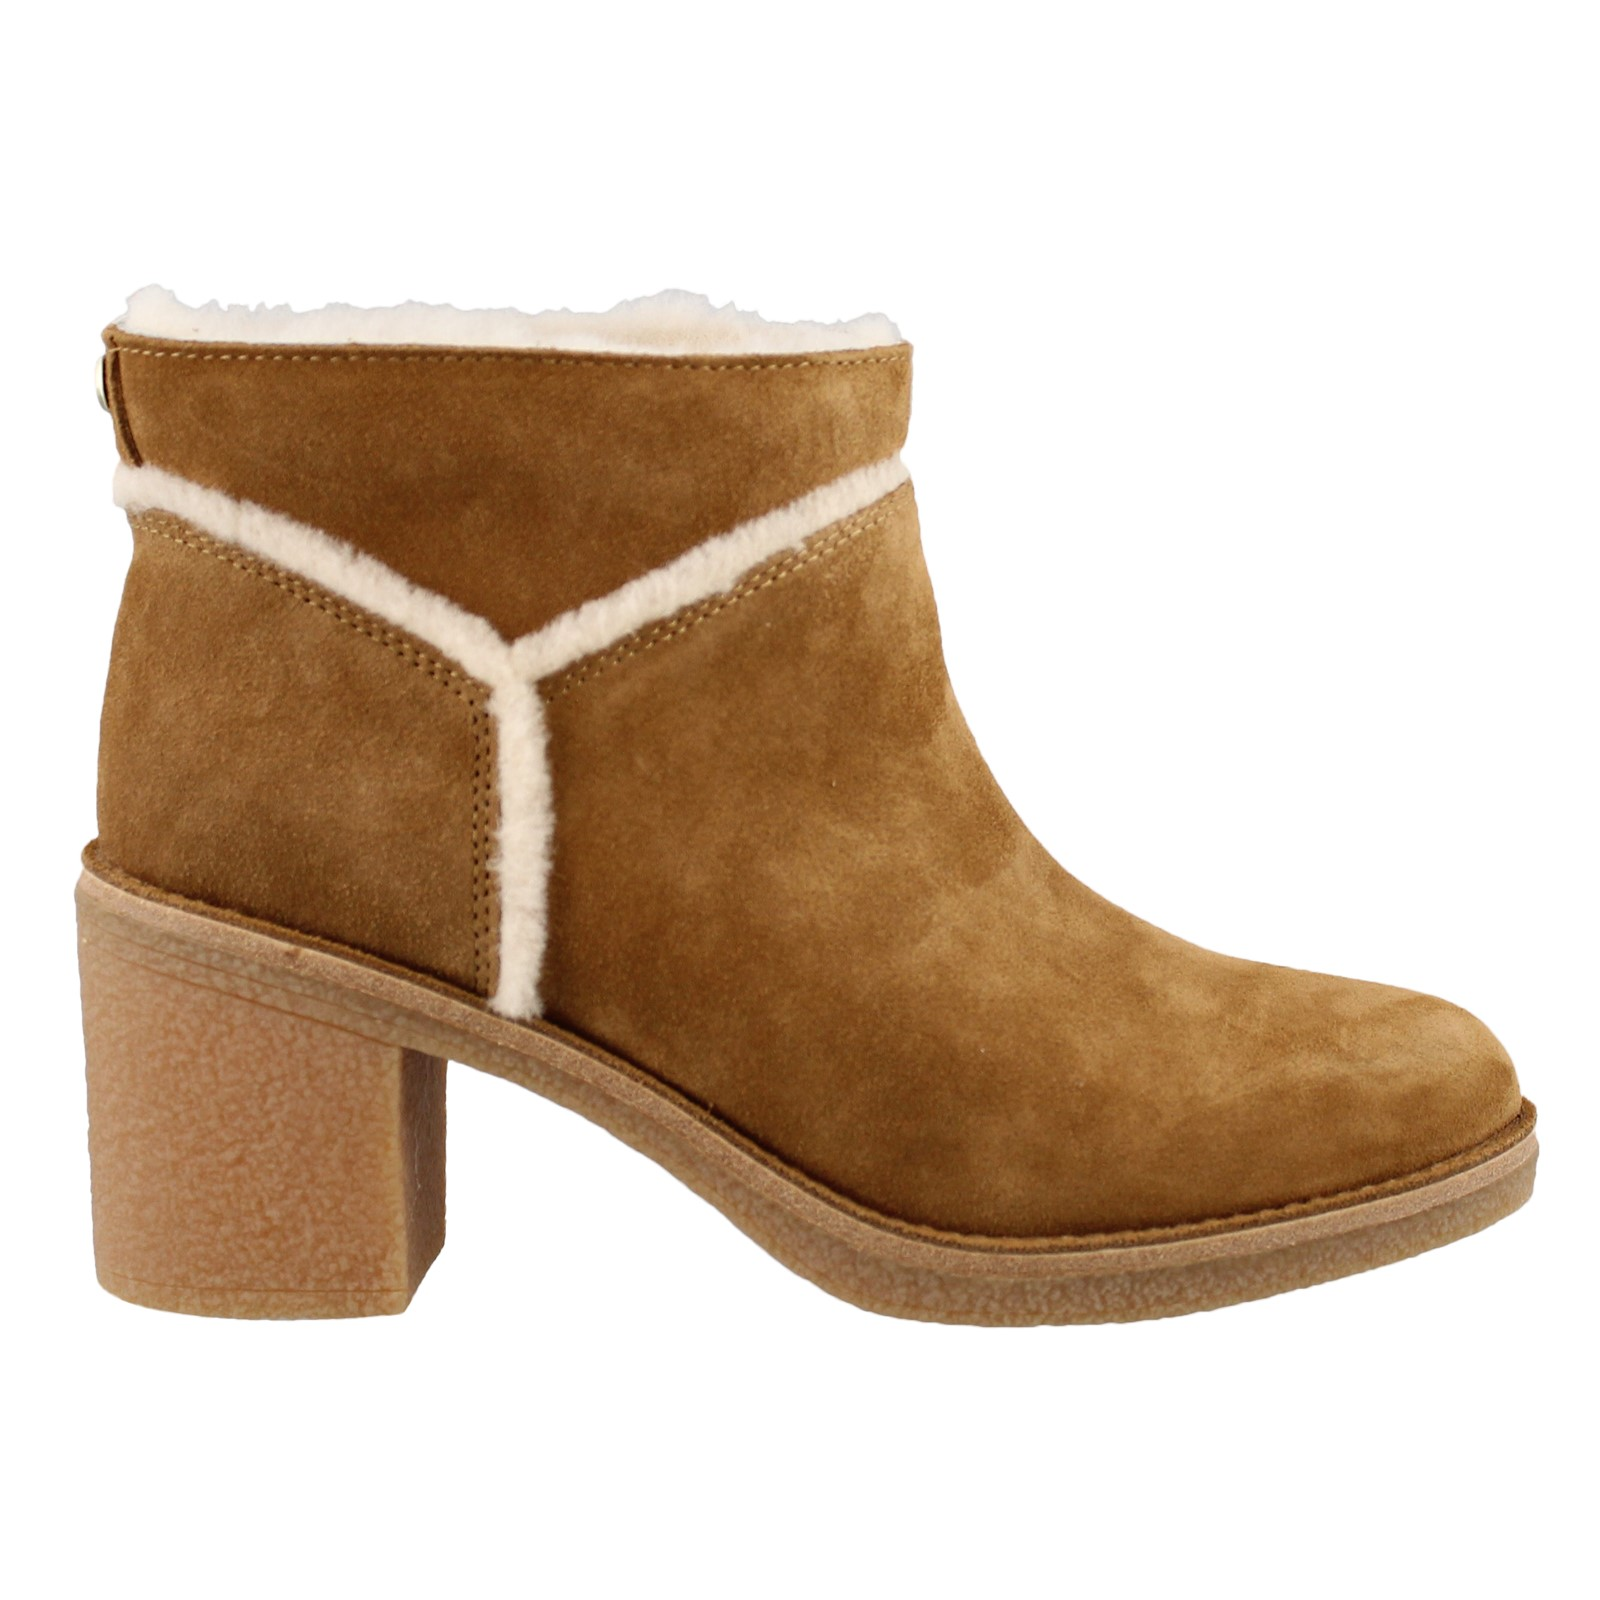 Women's Ugg, Kasen High Heel Boots